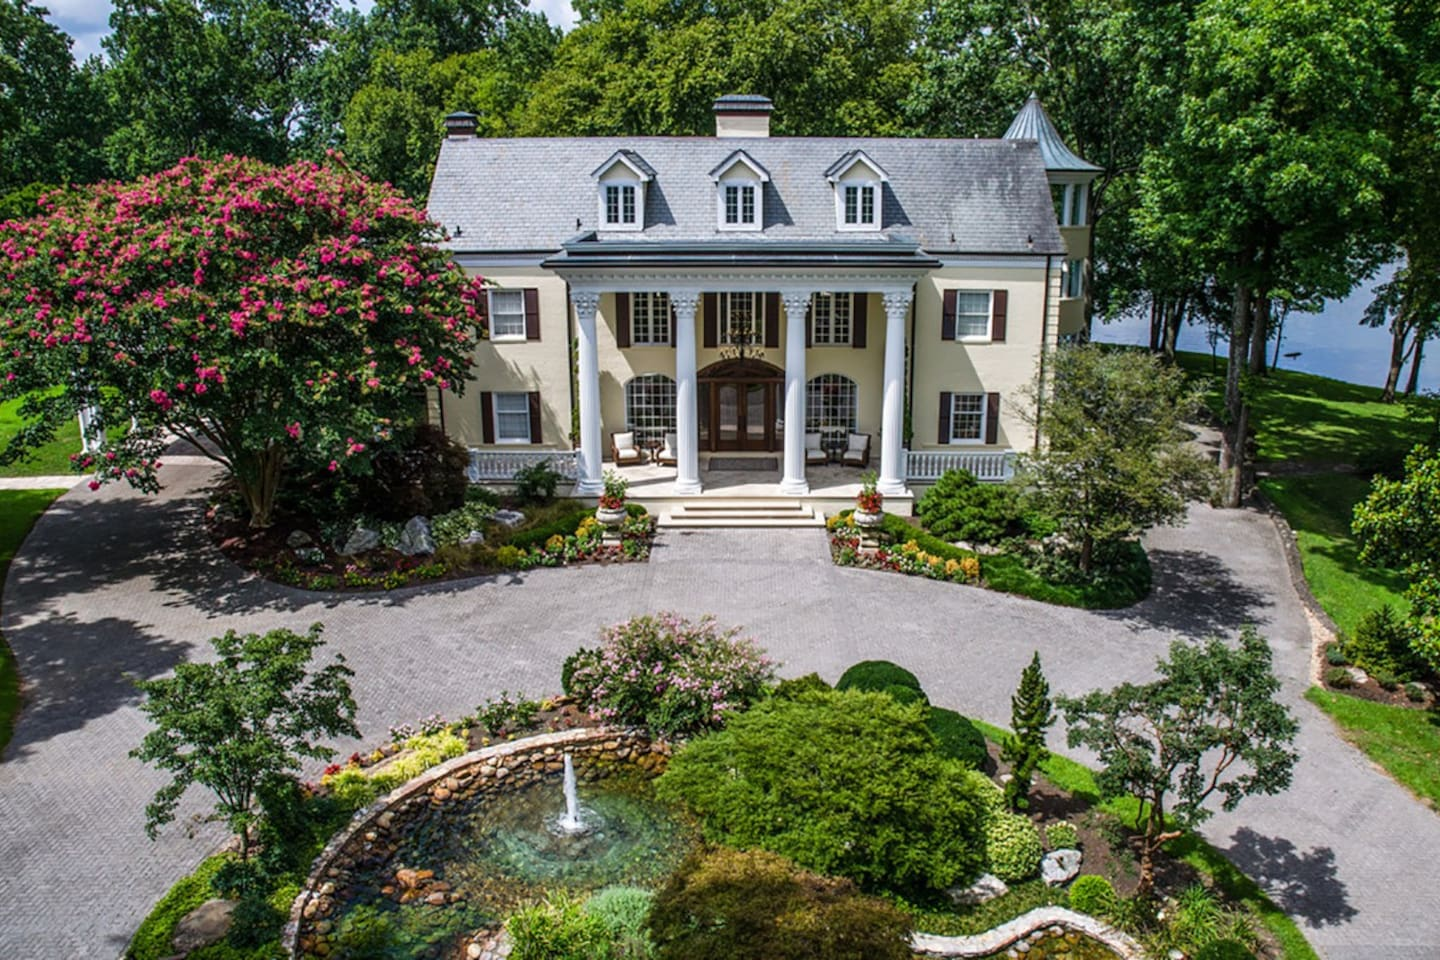 The Estate at Cherokee Dock located in Lebanon, Tennessee, is most widely recognized as the former home of award-winning artist, actor and author Reba McEntire, but today, The Estate at Cherokee Dock is a luxury event venue.